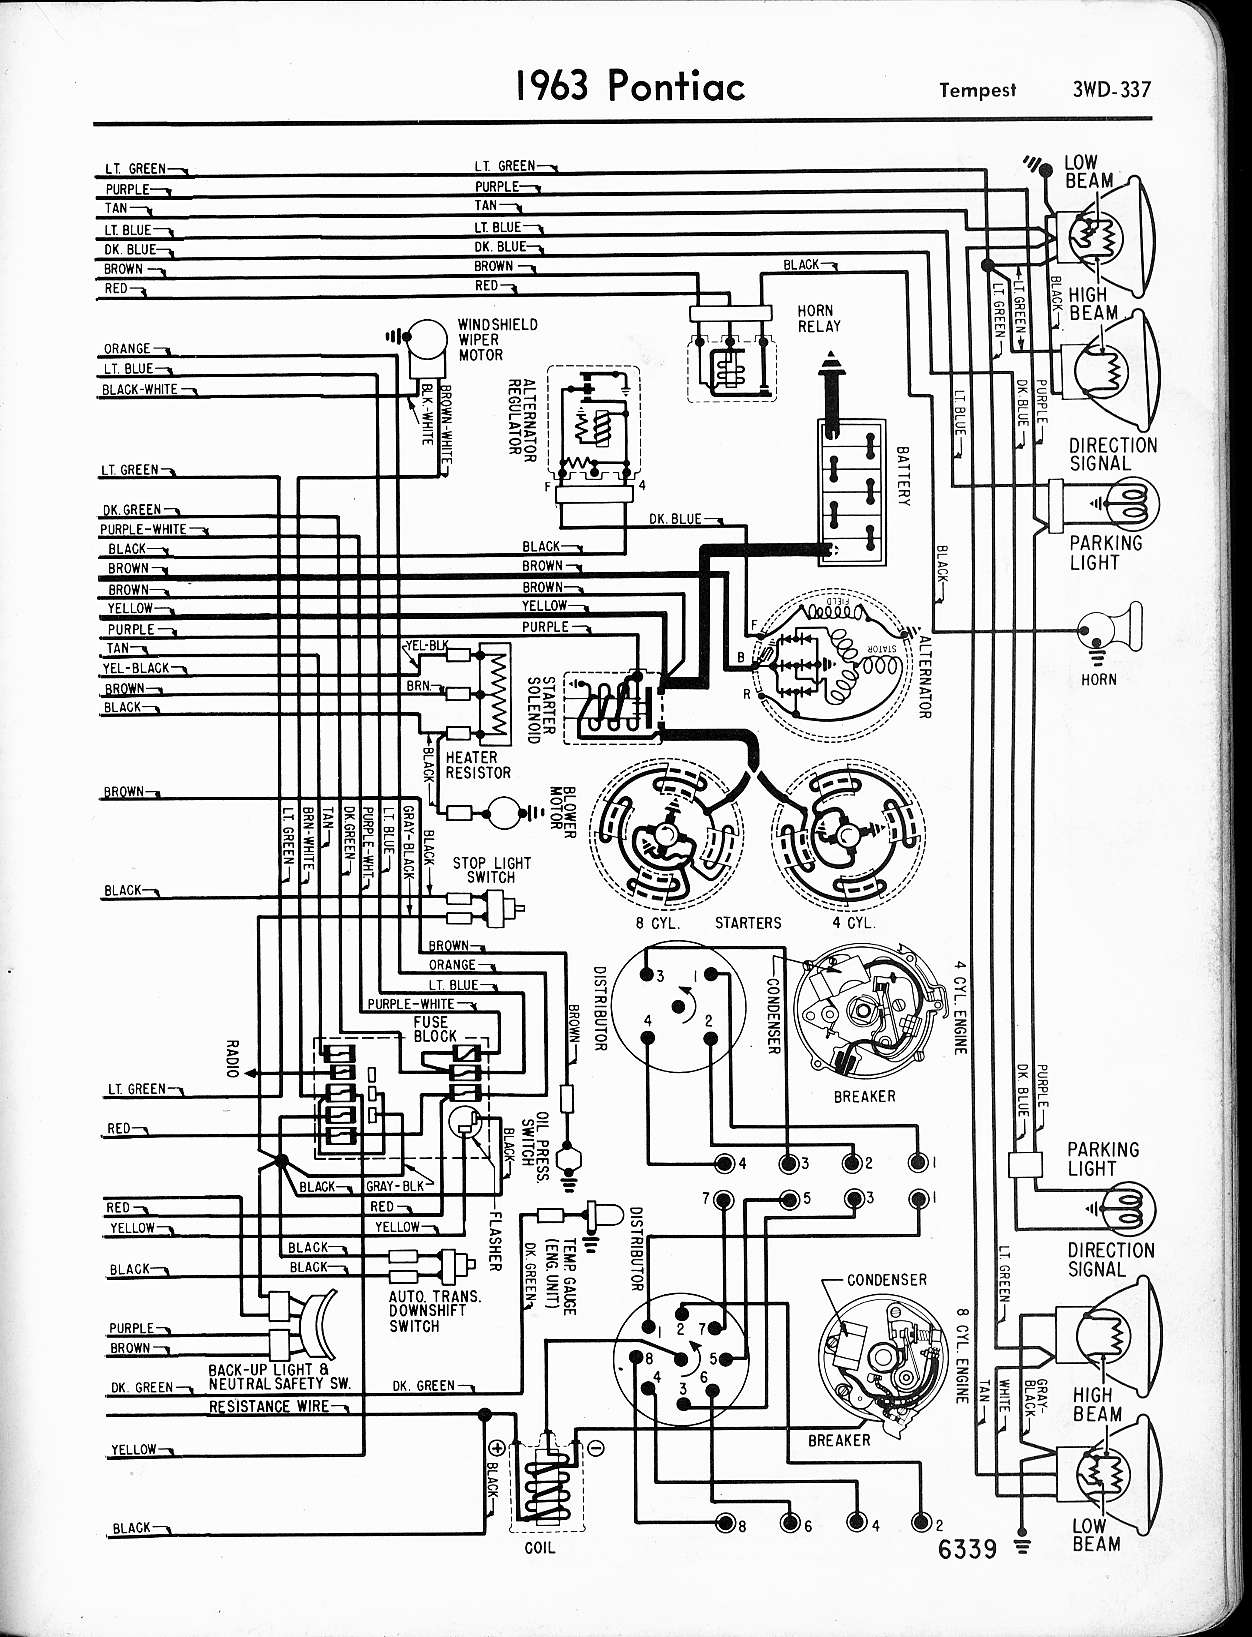 wiring diagram 1965 pontiac tempest anything wiring diagrams u2022 rh flowhq co engine wiring diagram 1968 buick skylark 1965 mustang engine wiring diagram